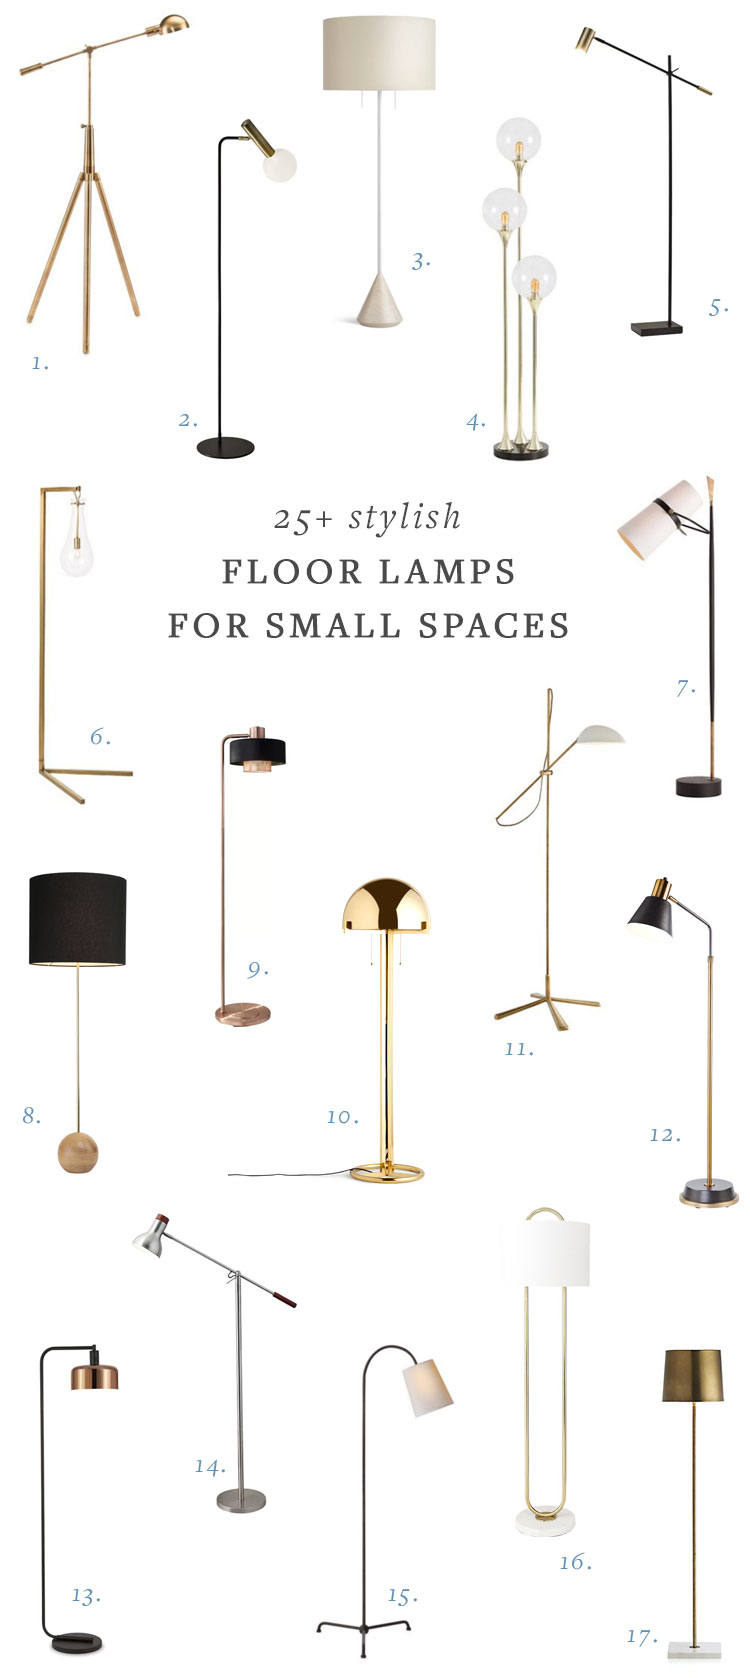 25+ stylish floor lamps for your small space or any size home! resources for lighting for living room, home office, or dining room. #smallspace #floorlamp #lighting #homedecor